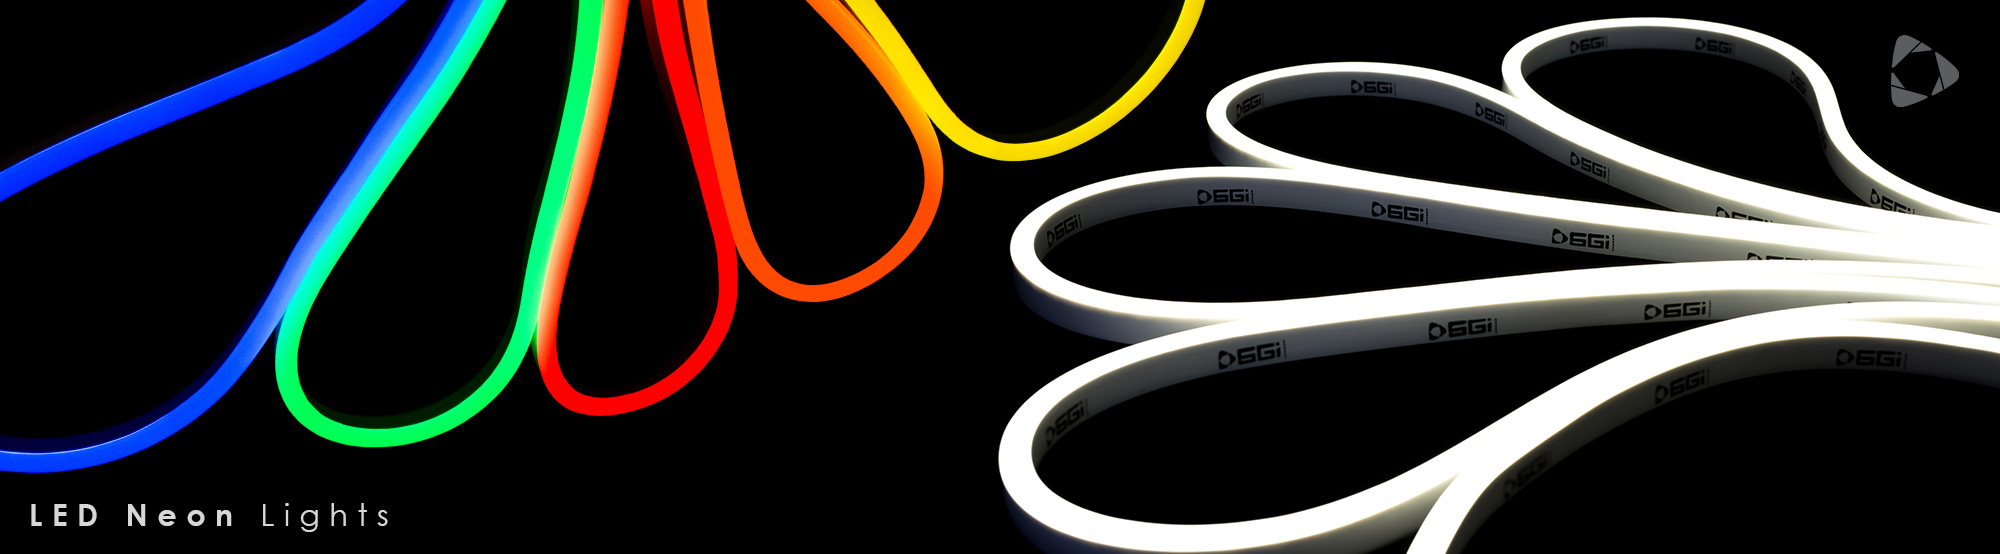 Product_SGi-LED-Neon-Lights_Banner-6